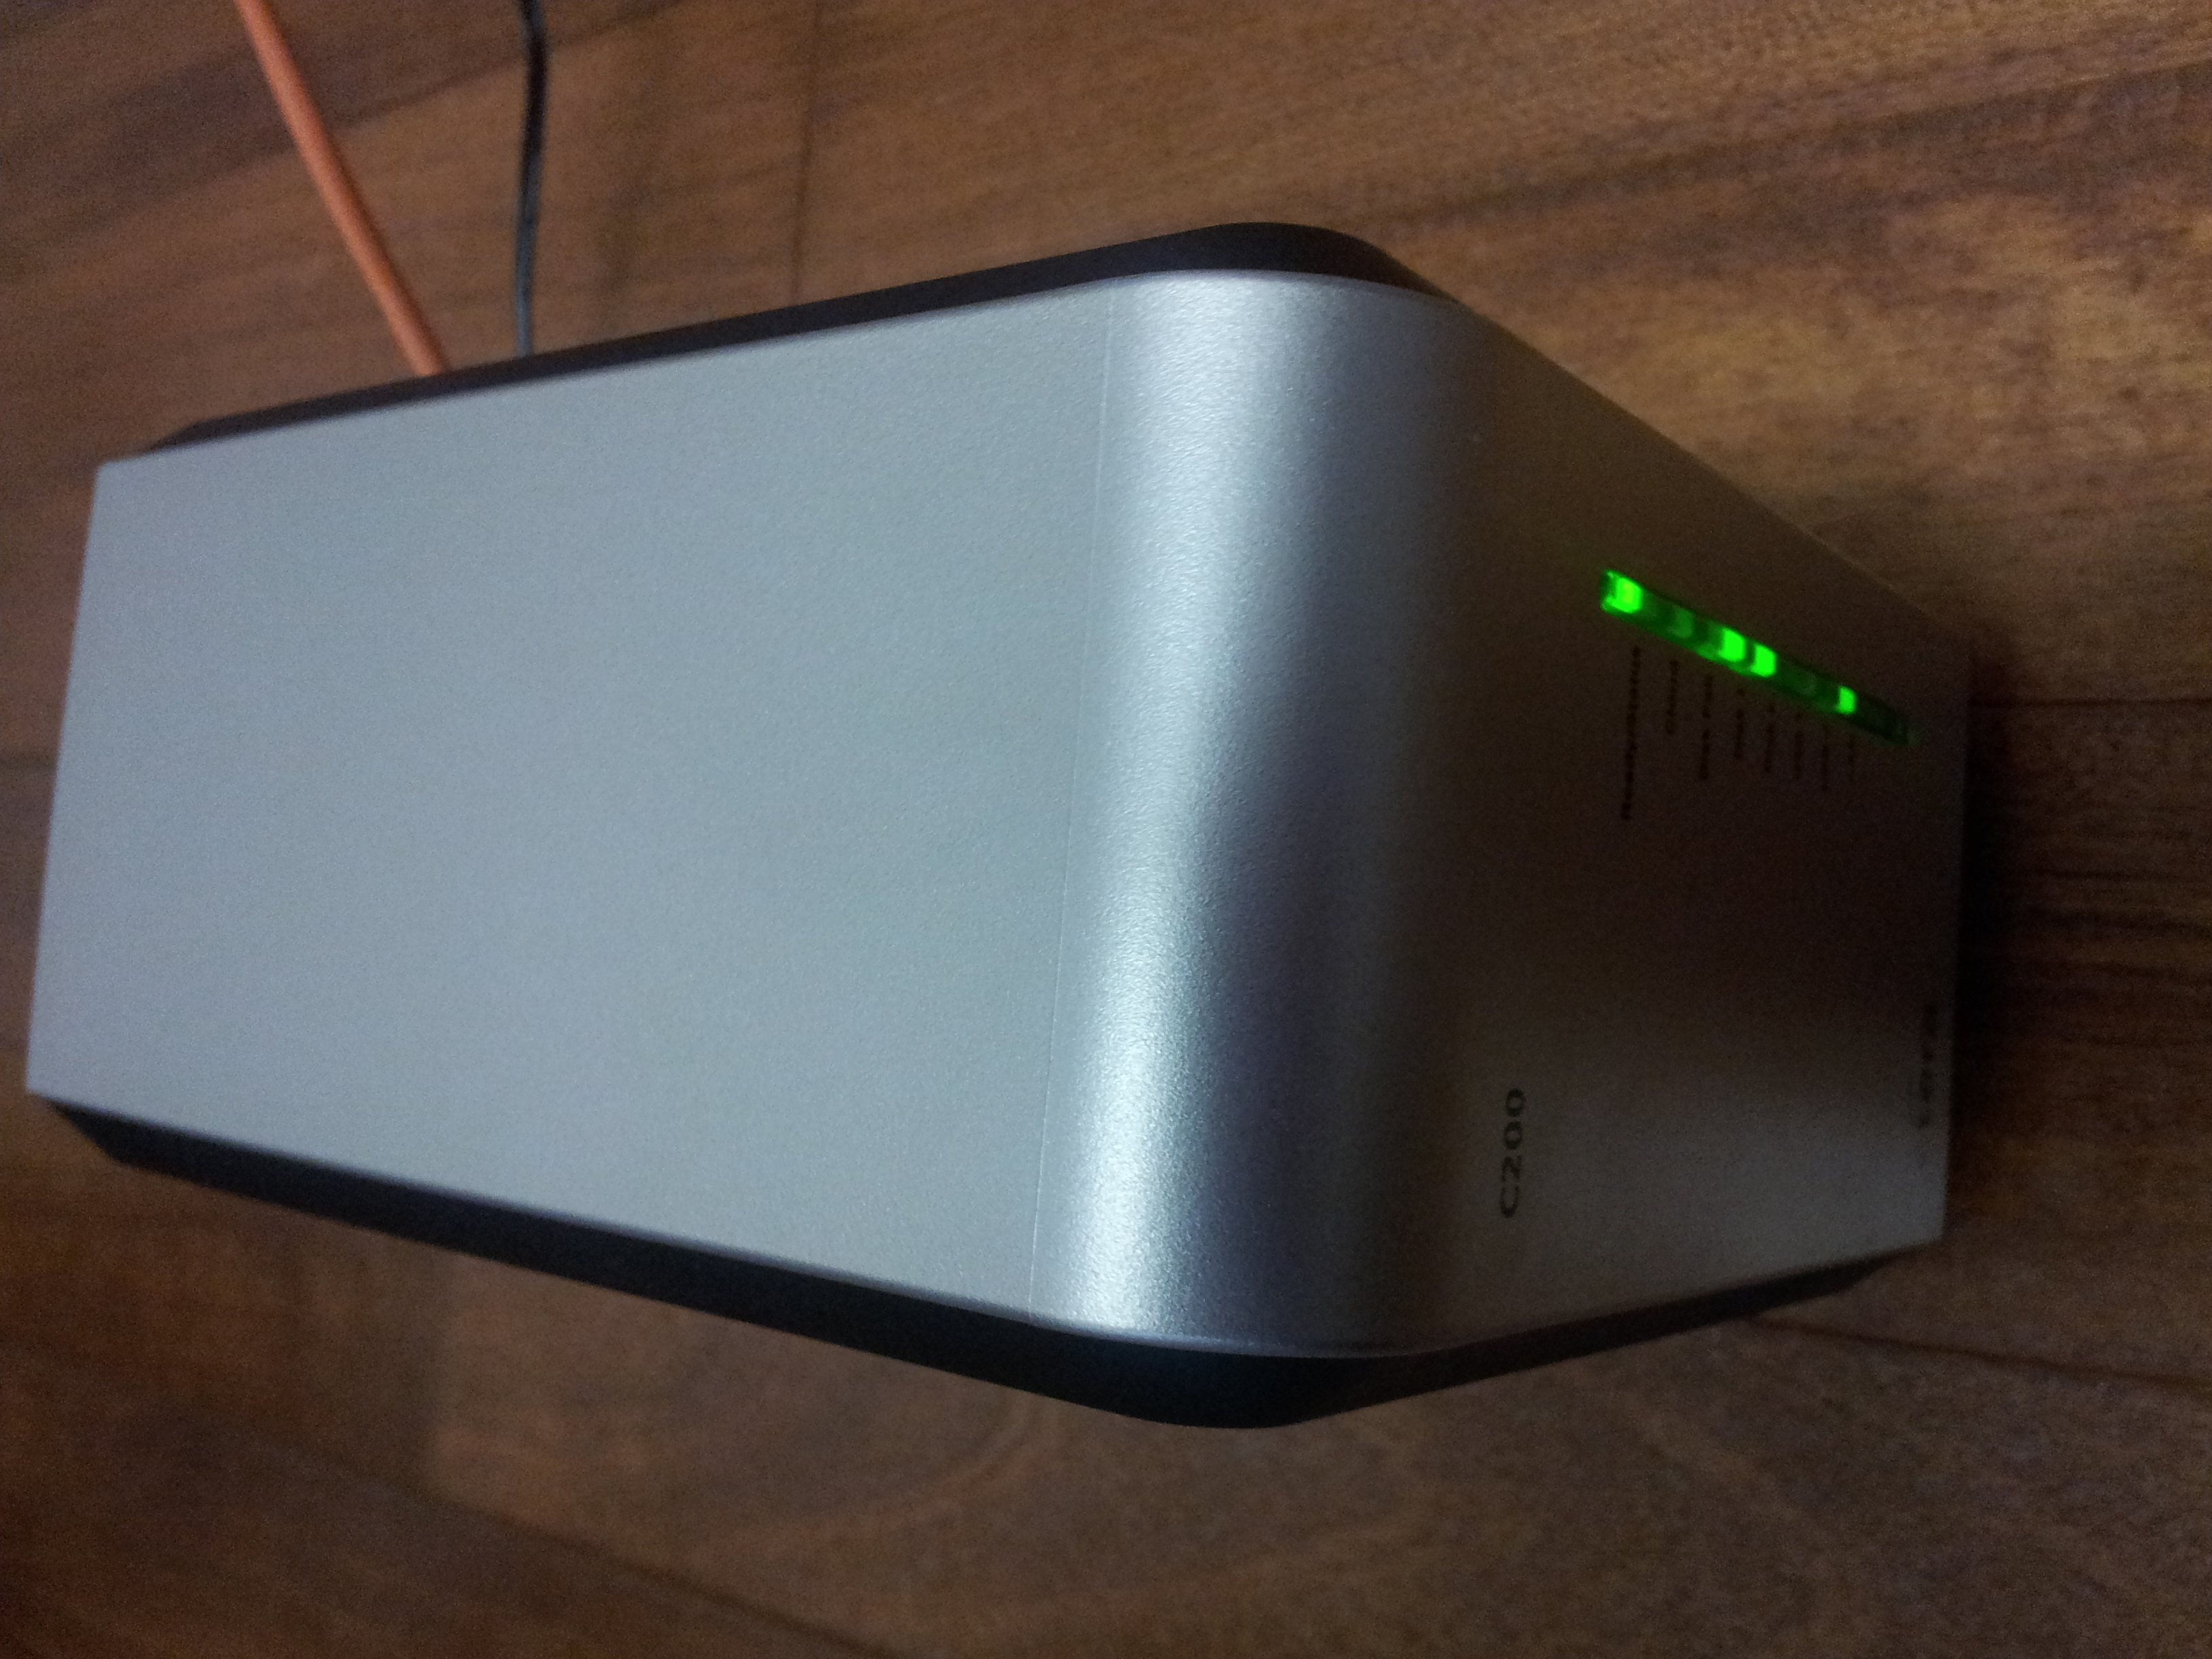 CTERA-C200-C400-C800-CloudPlug-Review-C200-Running-Front-End-of-Appliance